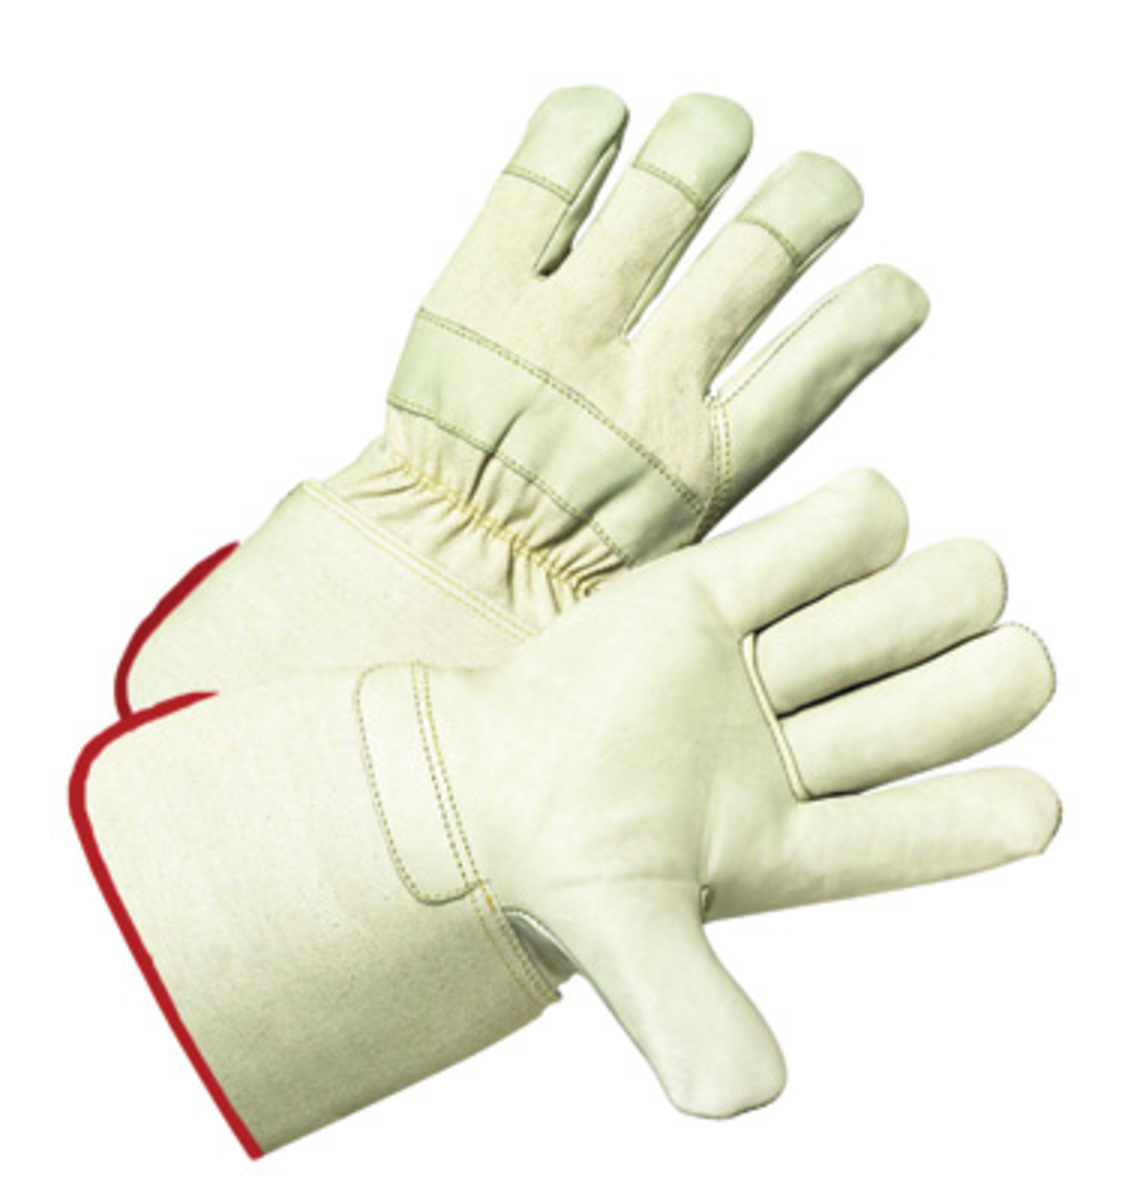 Gauntlet cuff leather work gloves - West Chester Large Premium Grade Top Grain Cowhide Leather Palm Glove With Rubberized Gauntlet Cuff